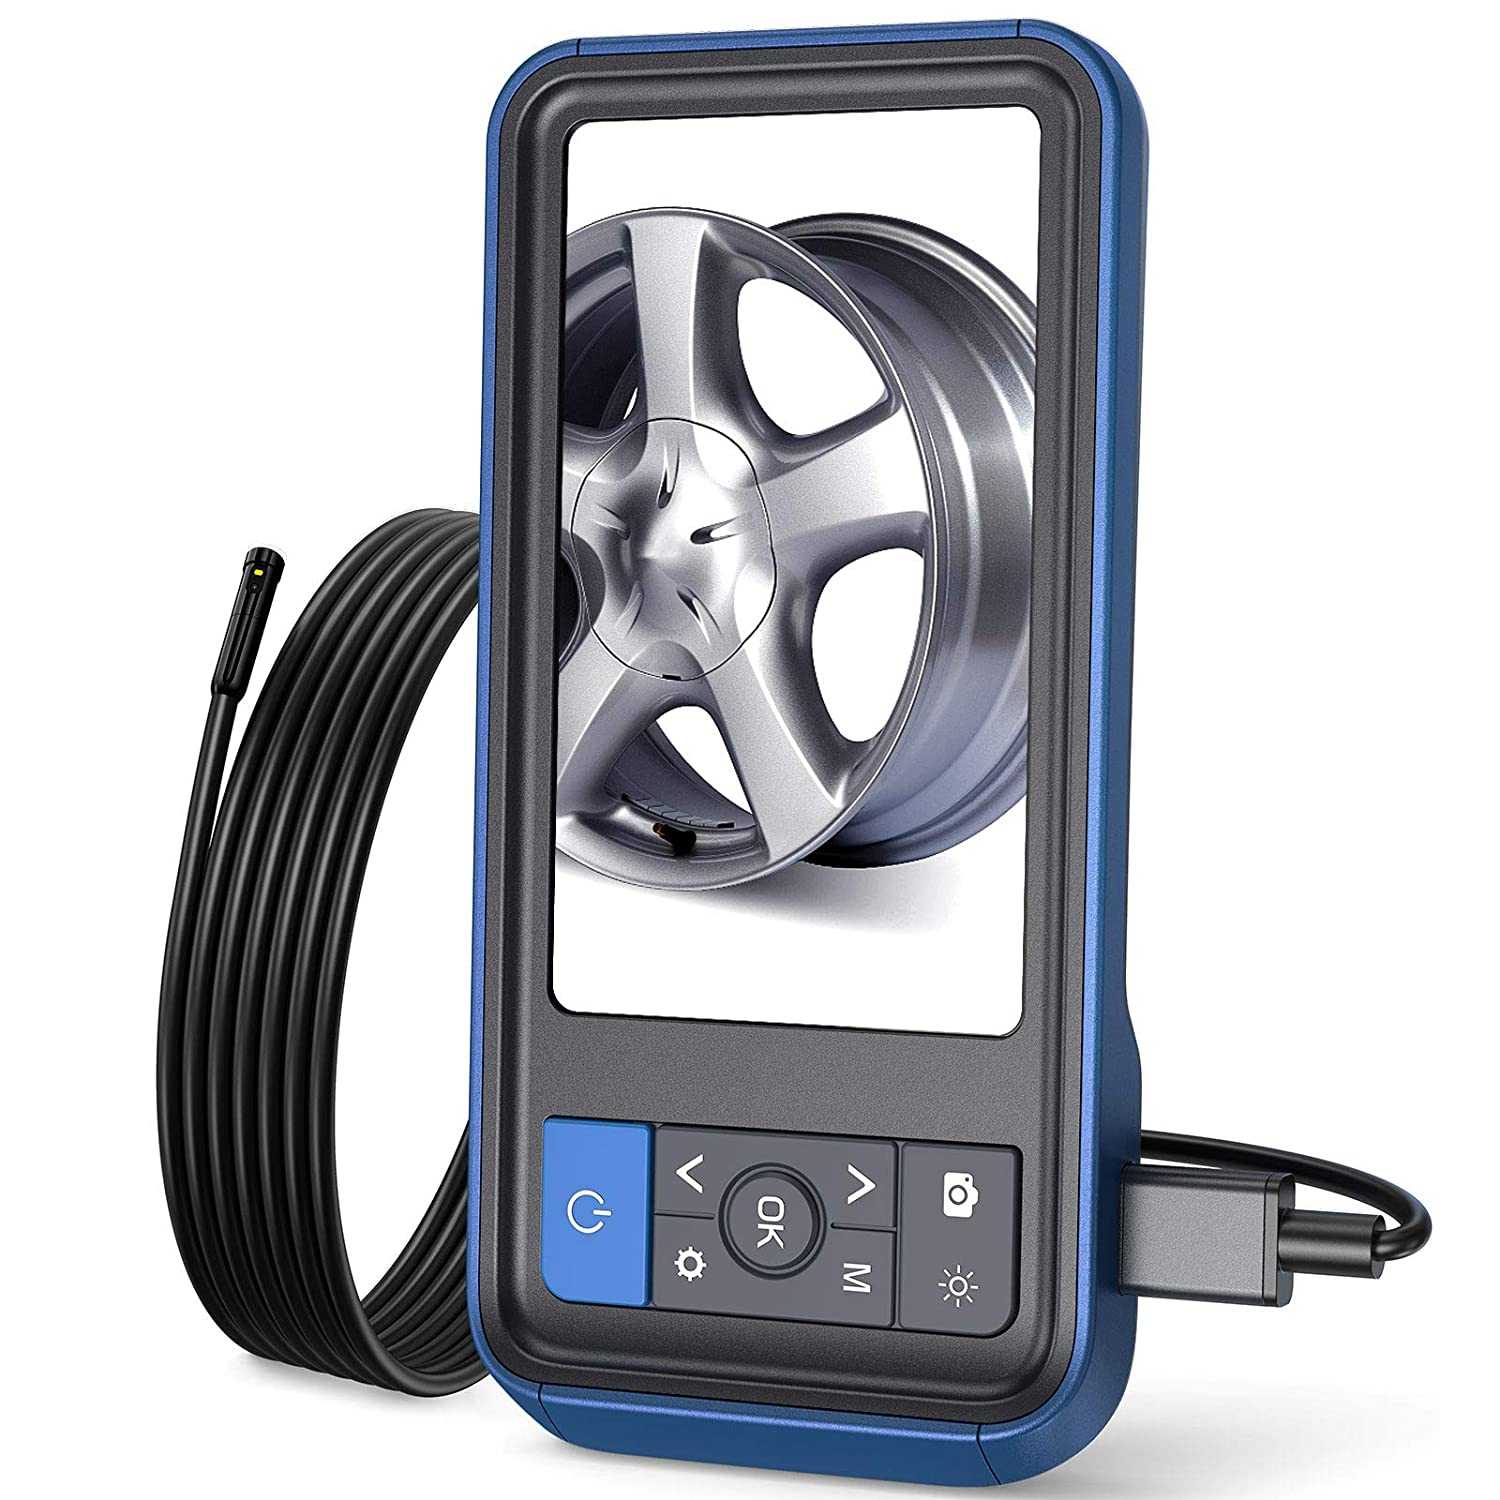 Teslong Inspection Camera, 8MM Dual Lens 4.5 inches IPS Screen Endoscope-Borescope with 32GB Card, 16.4ft Waterproof Cable, HD Display Screen, 6 LED Lights, IP67 Waterproof